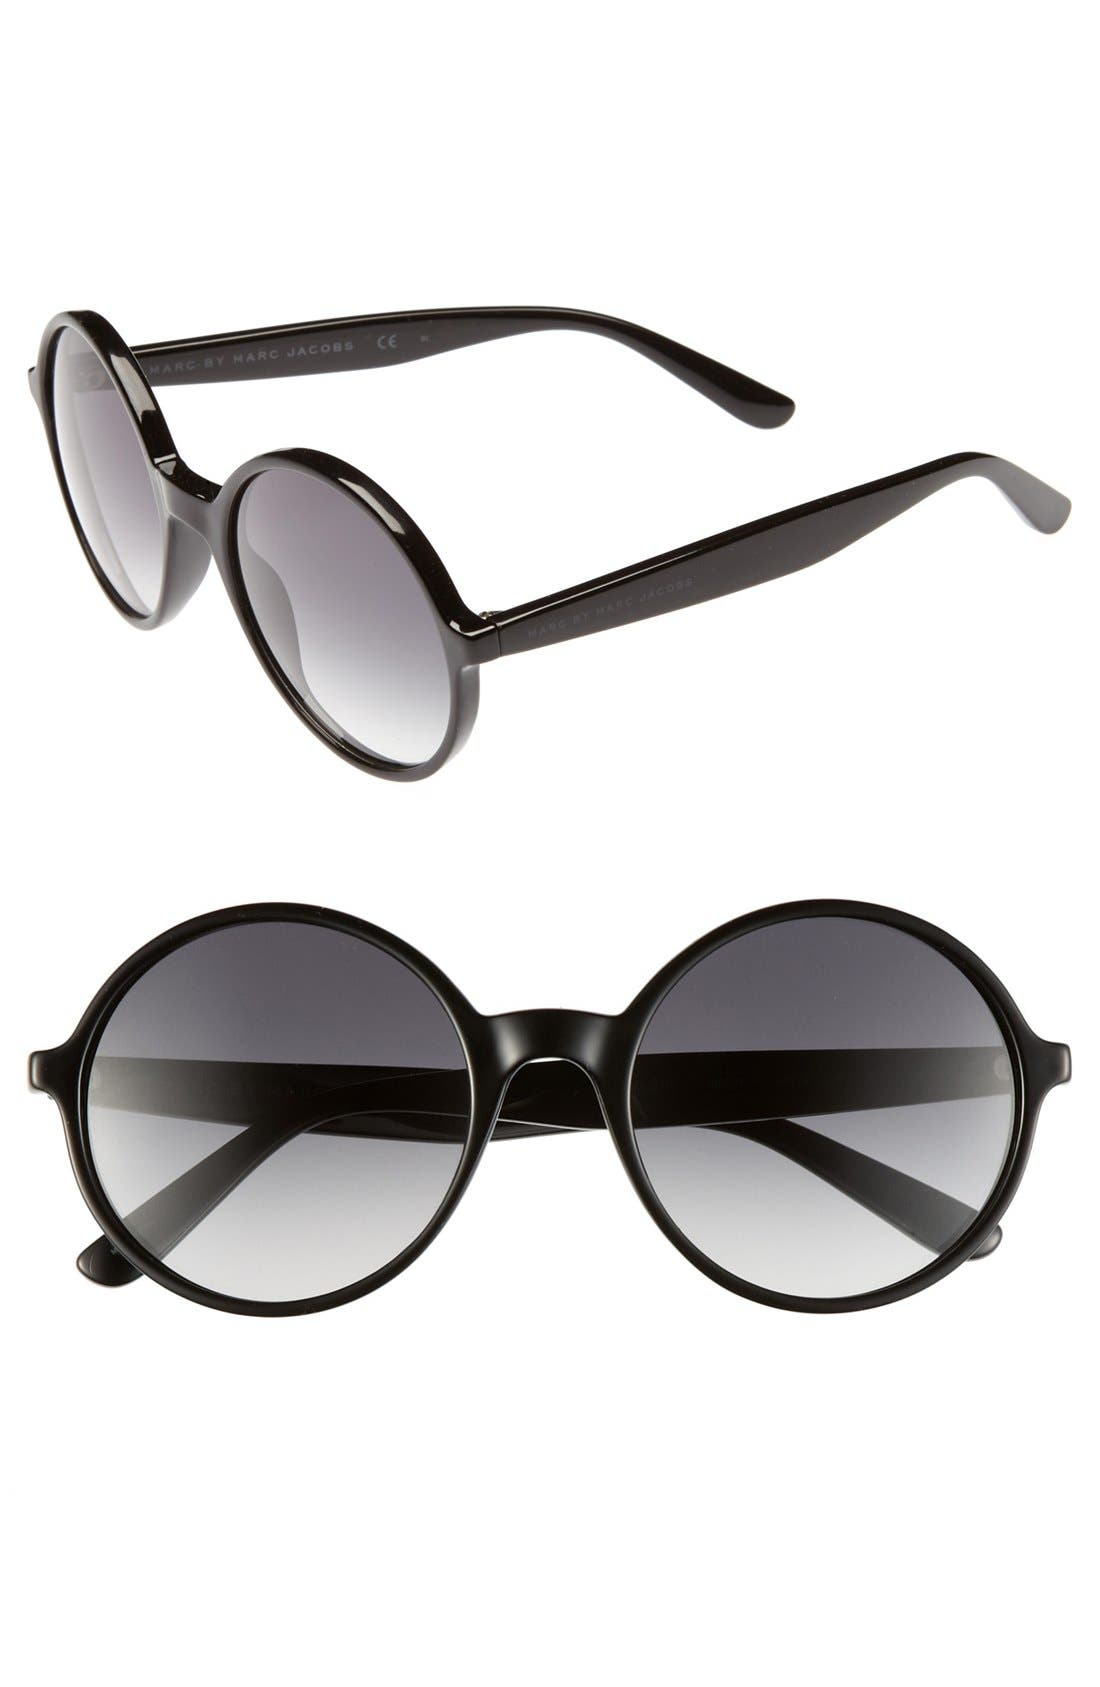 Alternate Image 1 Selected - MARC BY MARC JACOBS 54mm Retro Sunglasses